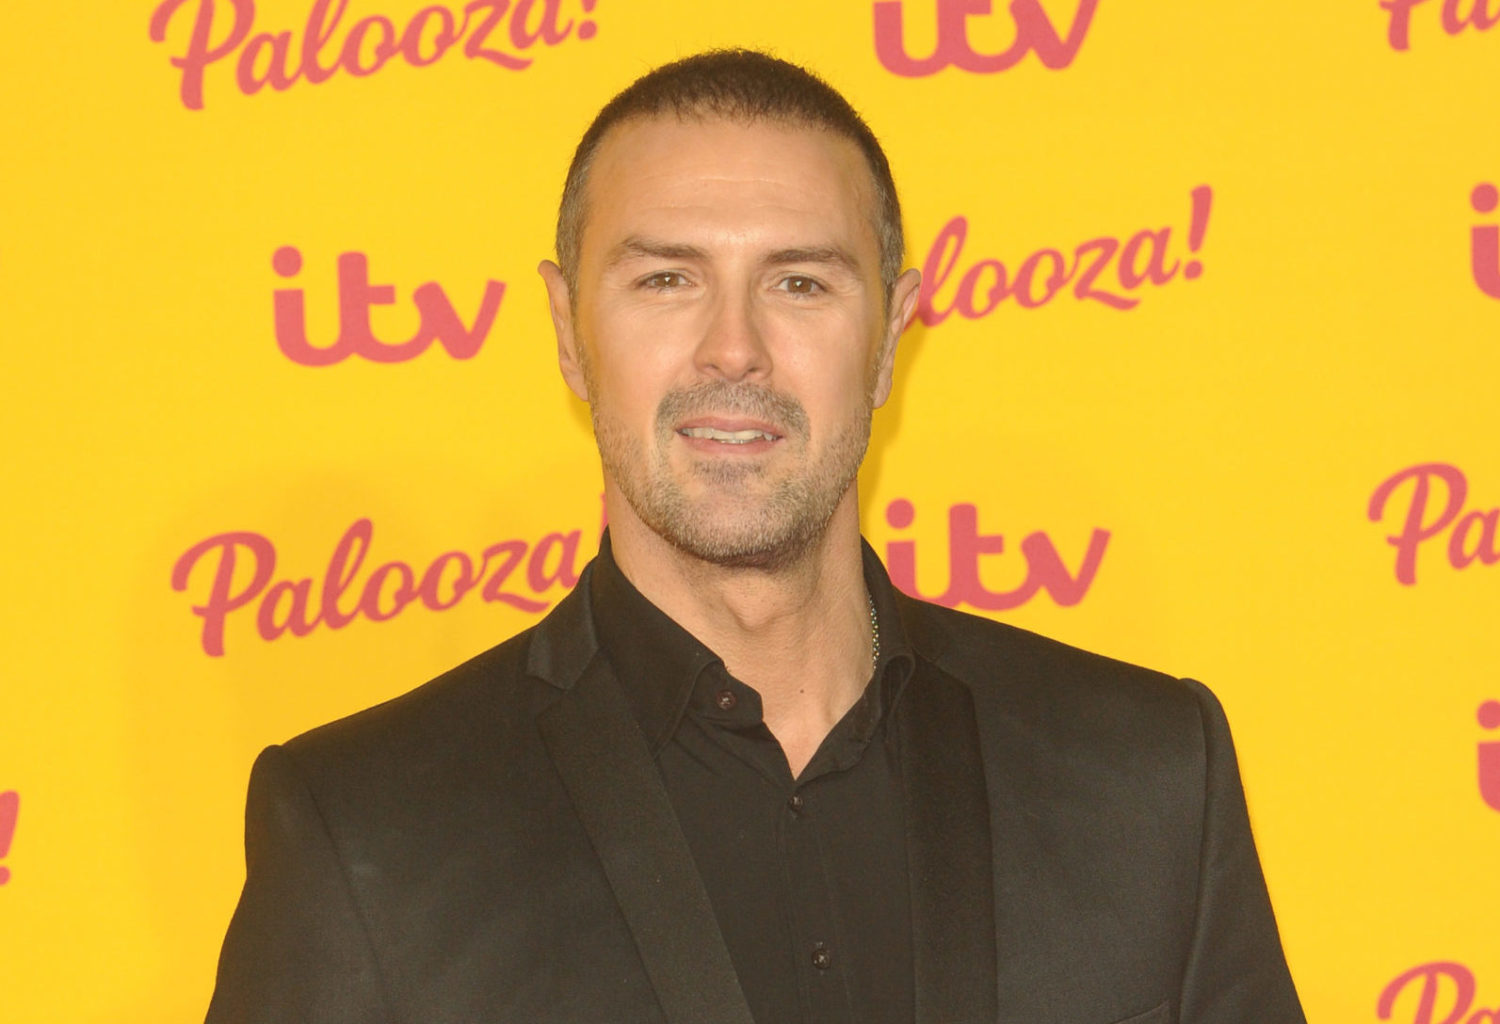 Paddy McGuinness returns to Top Gear just hours after Lamborghini car crash